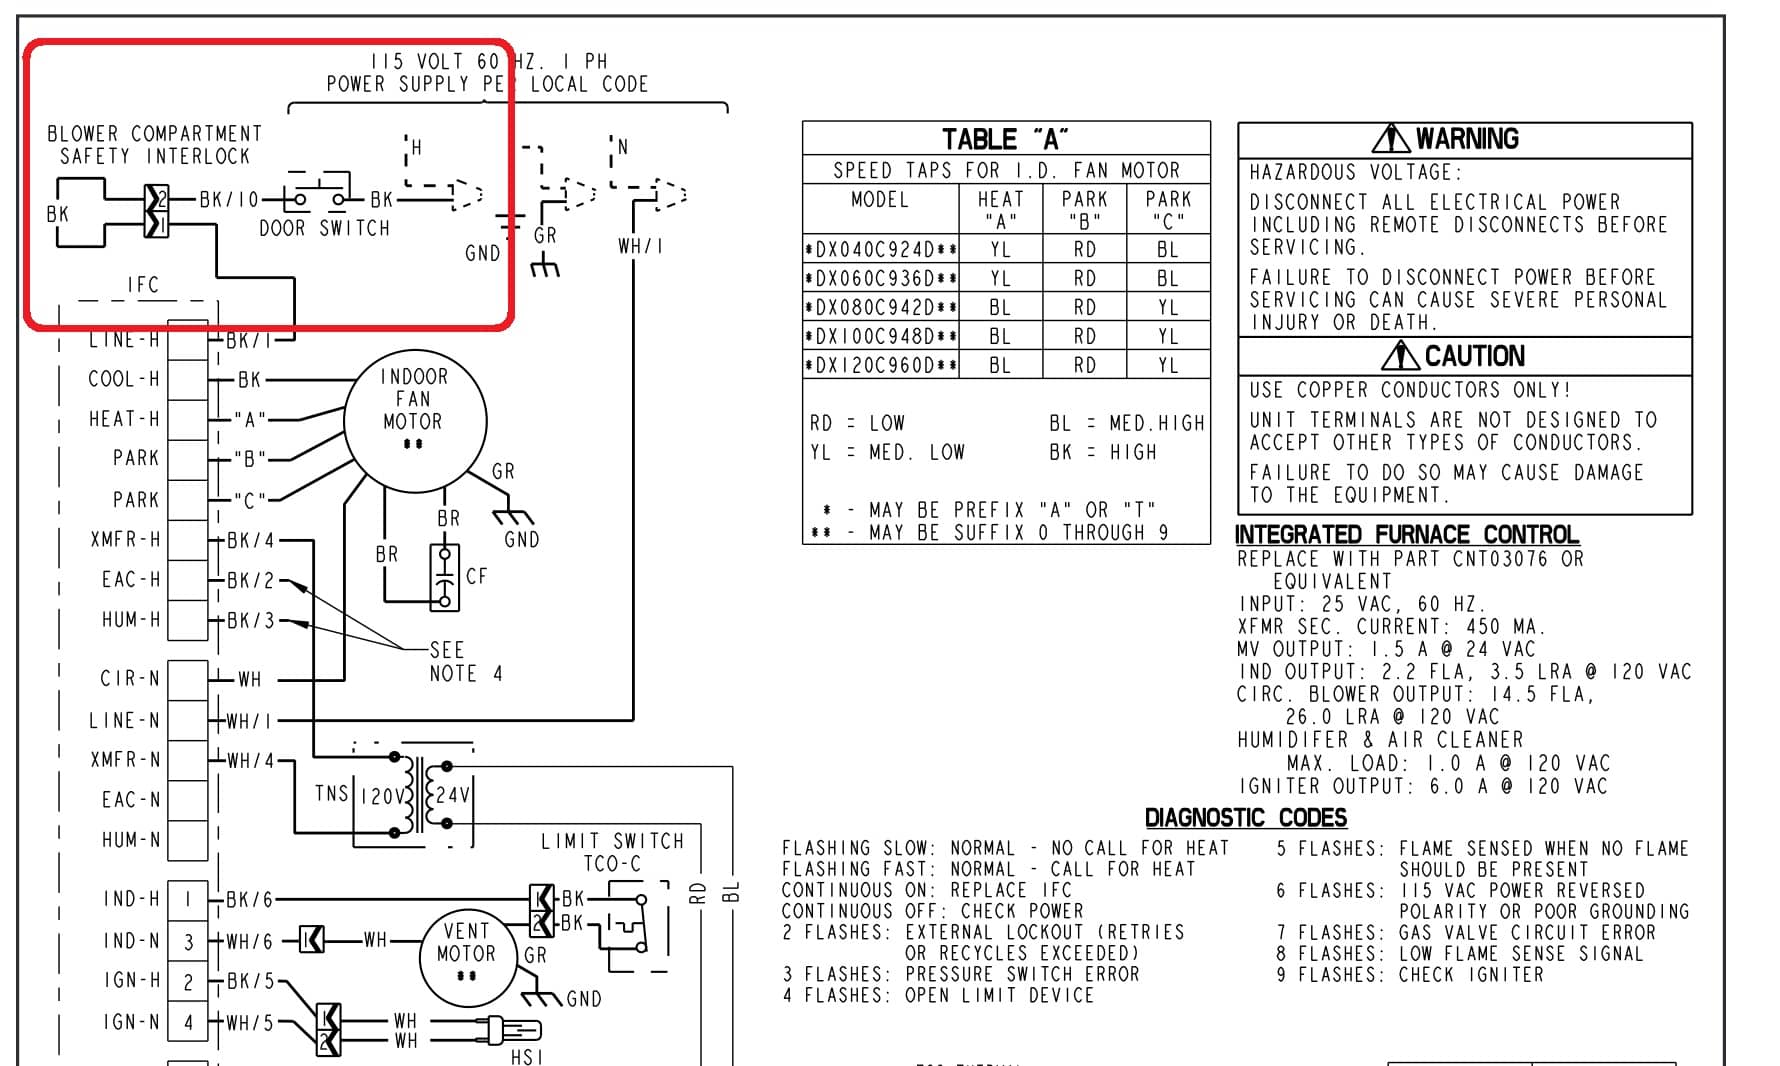 Trane_Furnace_Wiring_PARTIAL_023 trane xr80 wiring diagram trane xr80 parts manual \u2022 wiring  at mr168.co